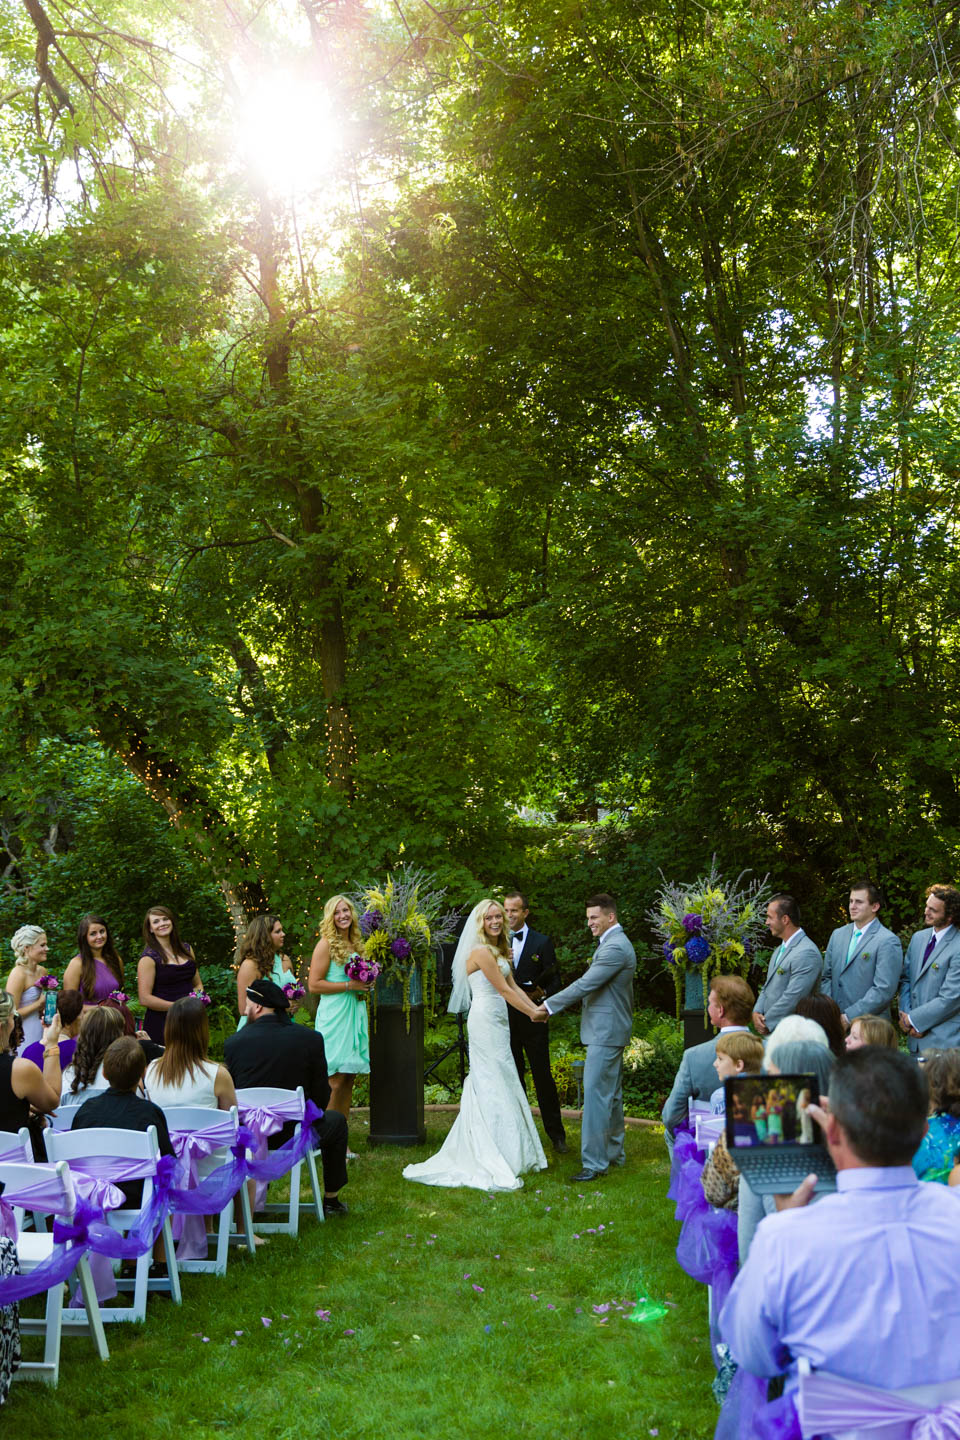 Sun shines through the trees of the backyard wedding ceremony